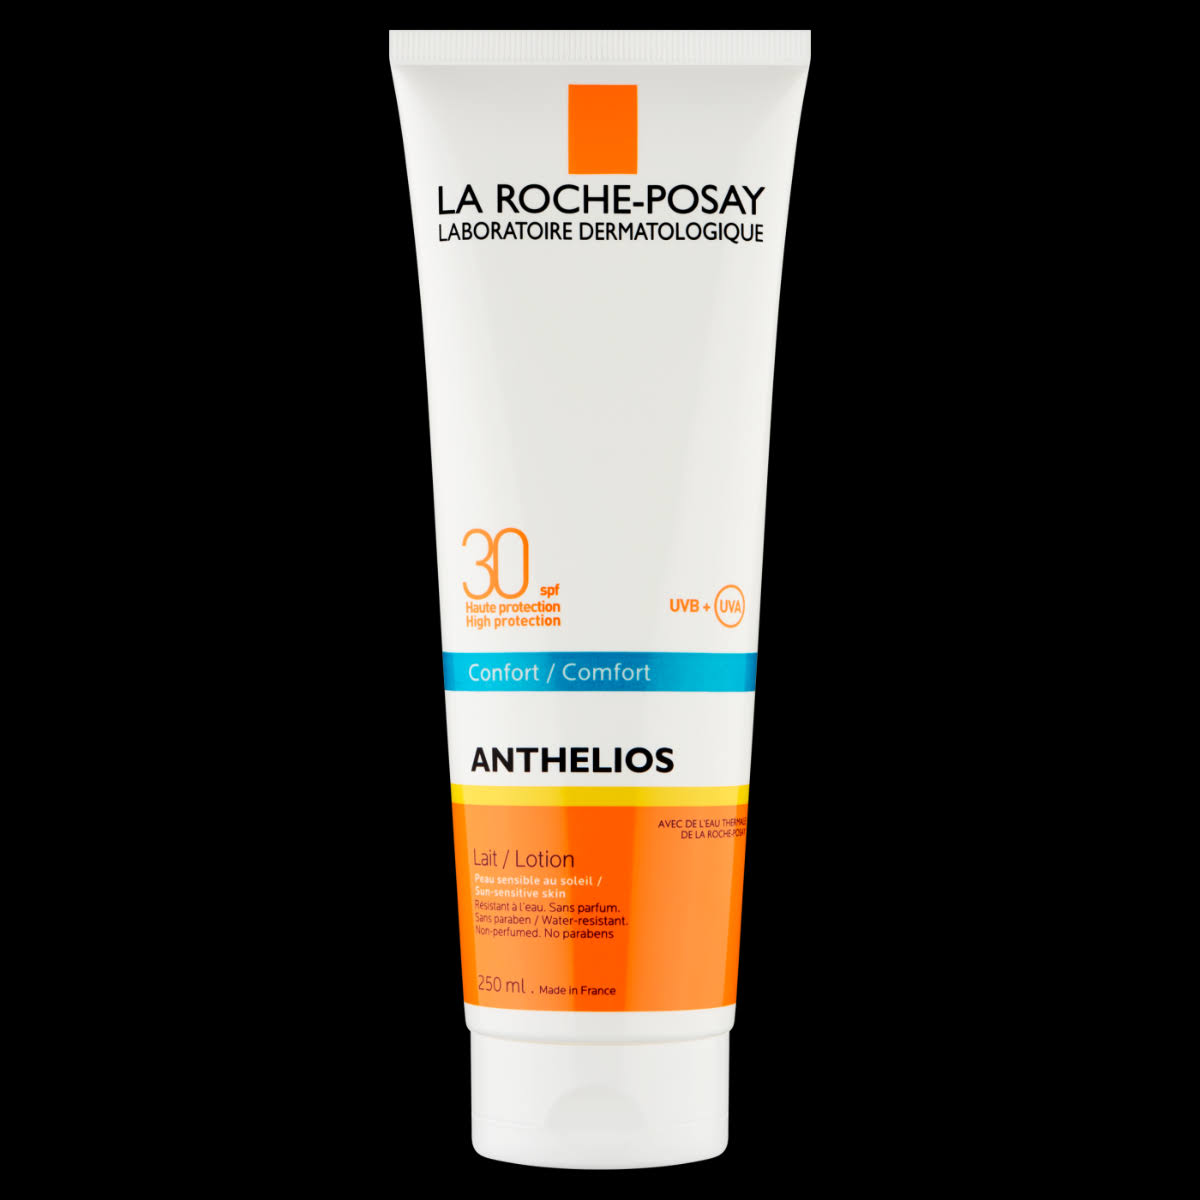 La Roche Posay Anthelios Body Lotion - SPF 30, 250ml